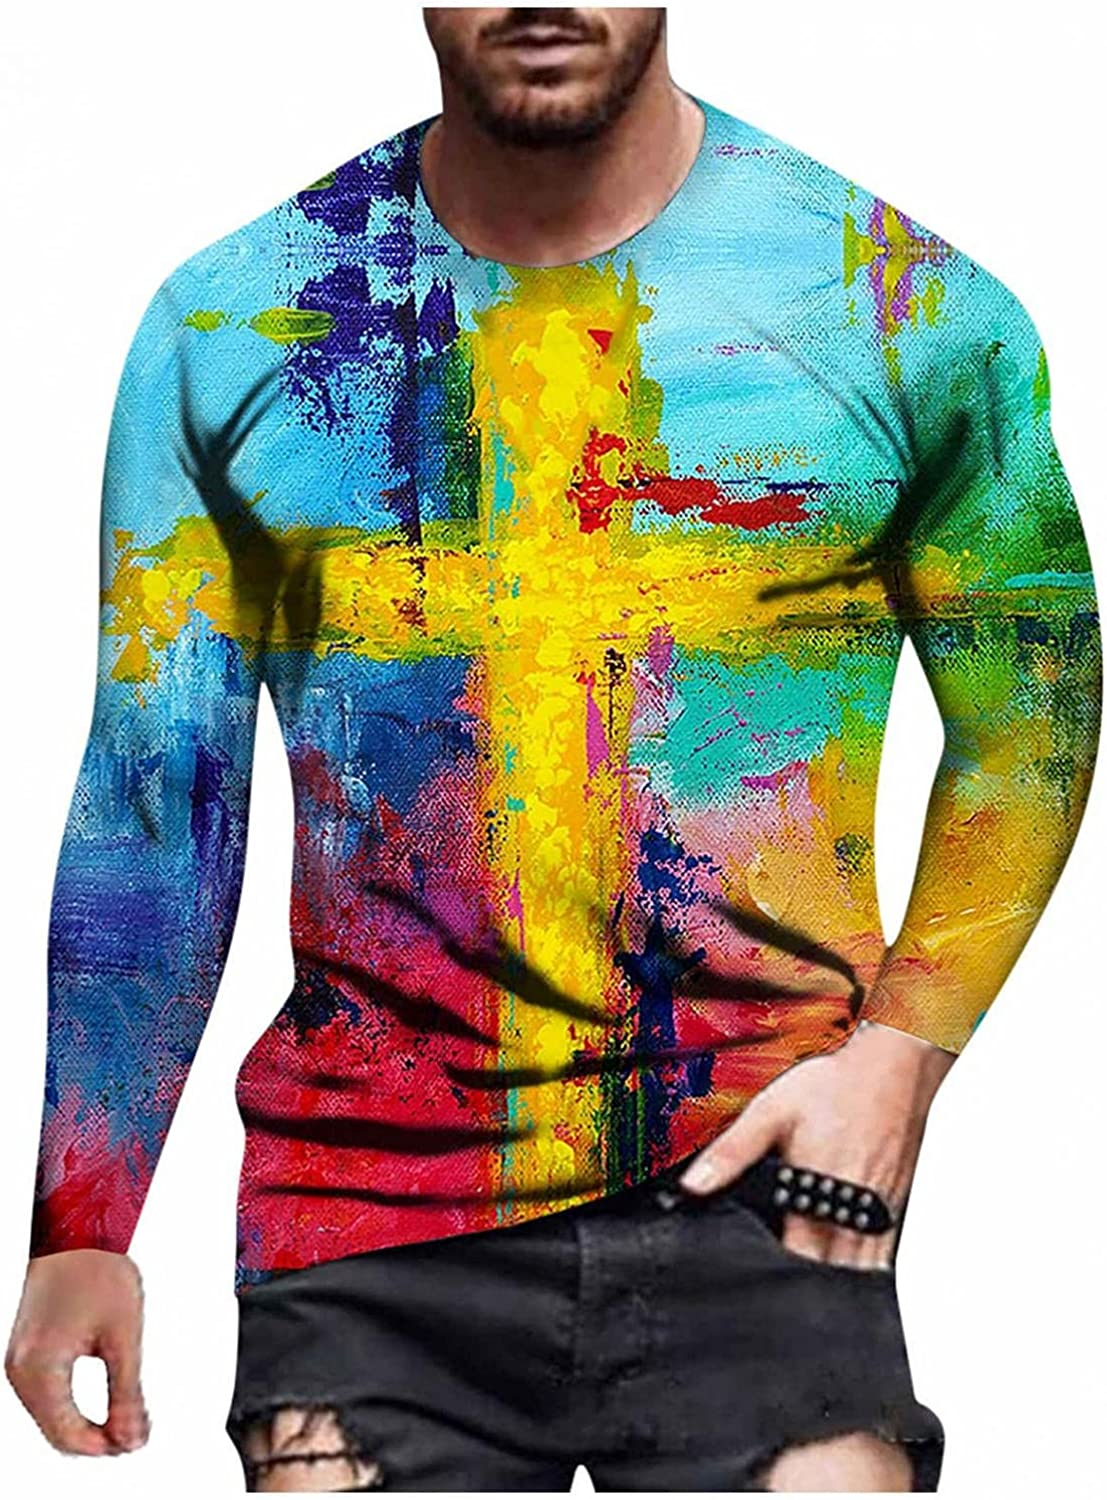 Men T-Shirts Cross Printed 3D Graphic Tee Casual Round Neck Long Sleeve Tops Workout Sport Men's T Shirts